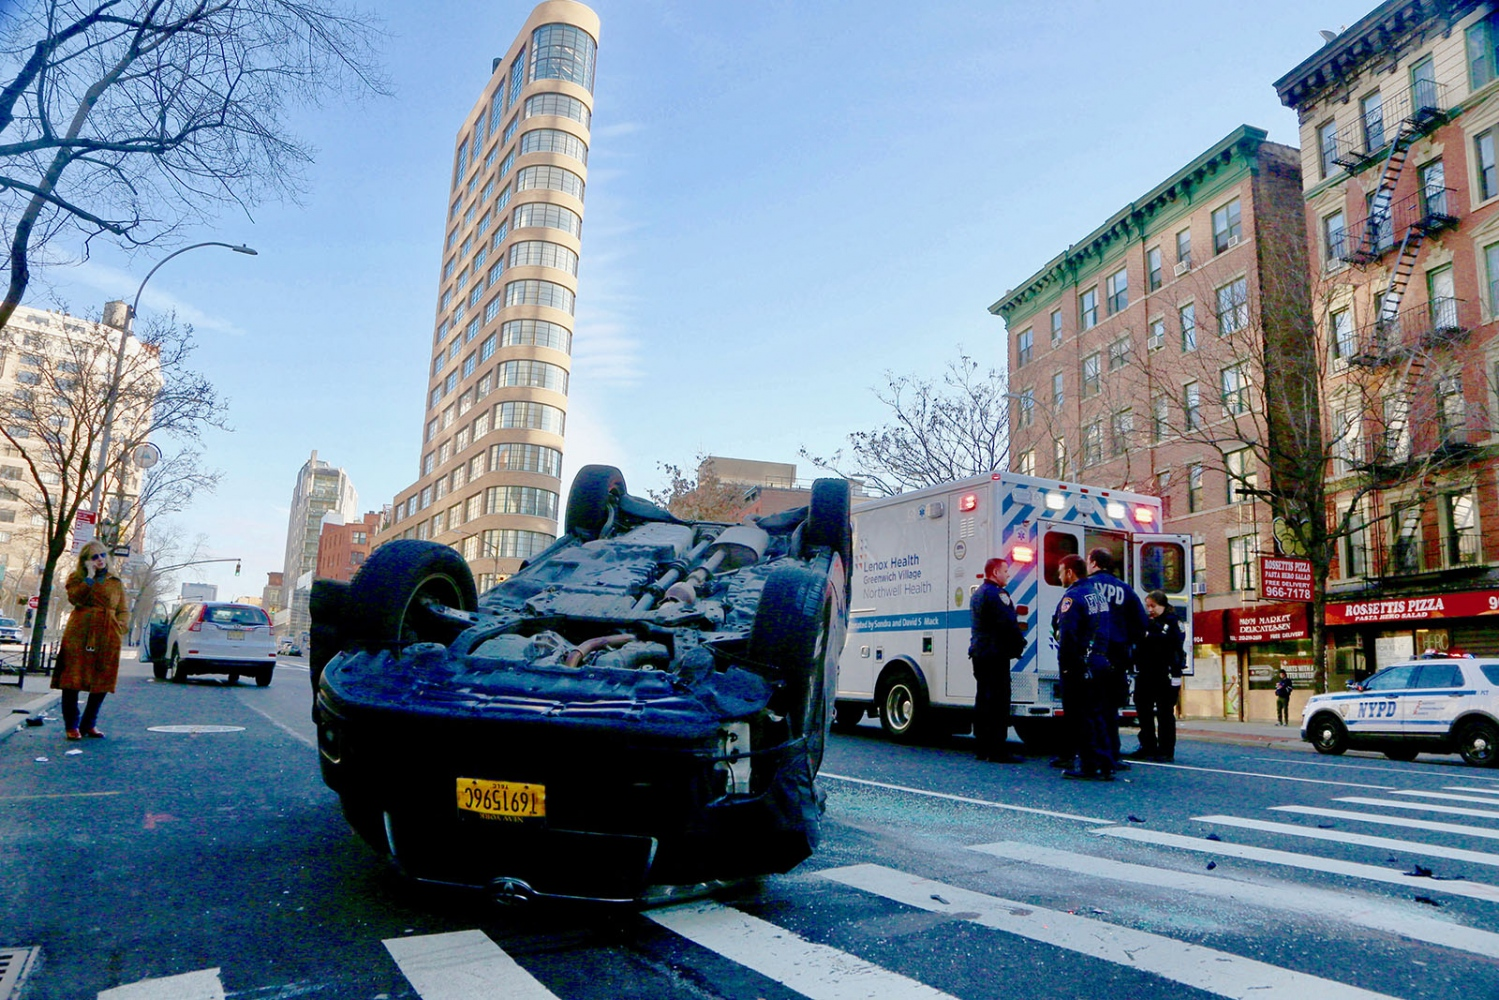 NYPD Officers from the 1st Precinct in downtown Manhattan work on the scene of a two car accident on the corner of Watts Street and Sixth Avenue.